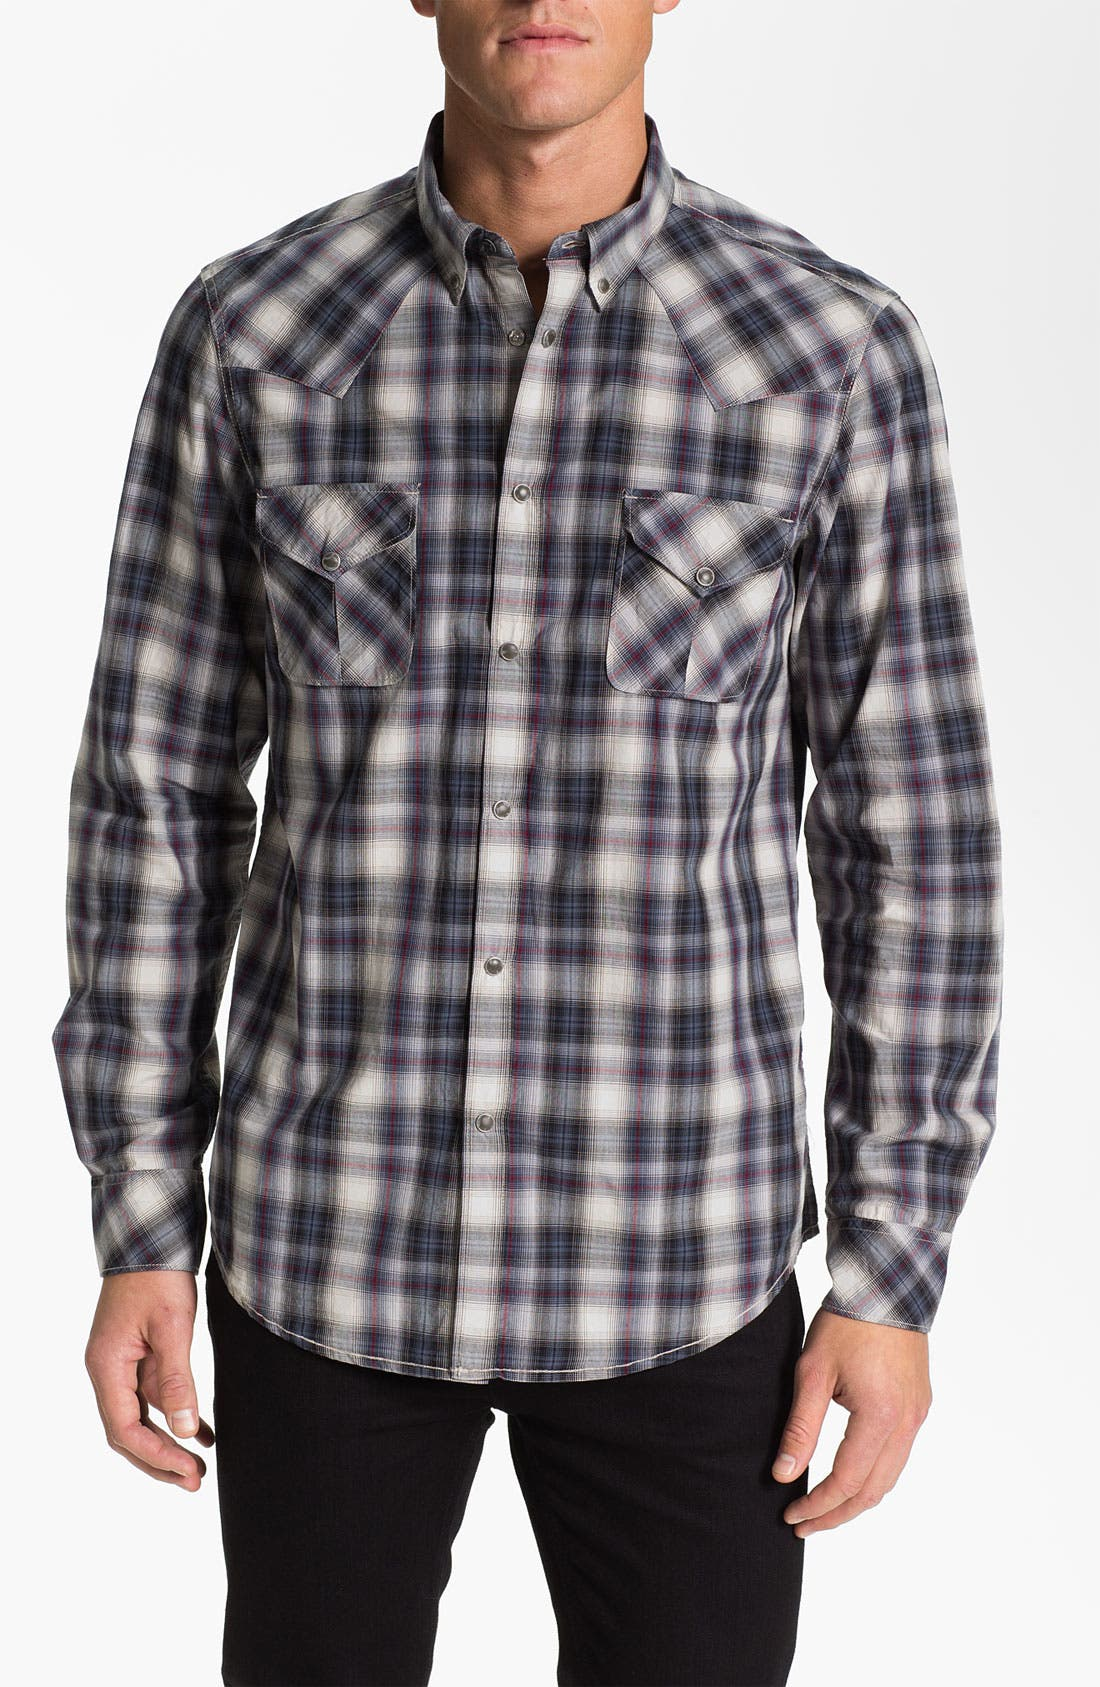 Main Image - Ben Sherman 'Clerkenwell' Plaid Woven Shirt